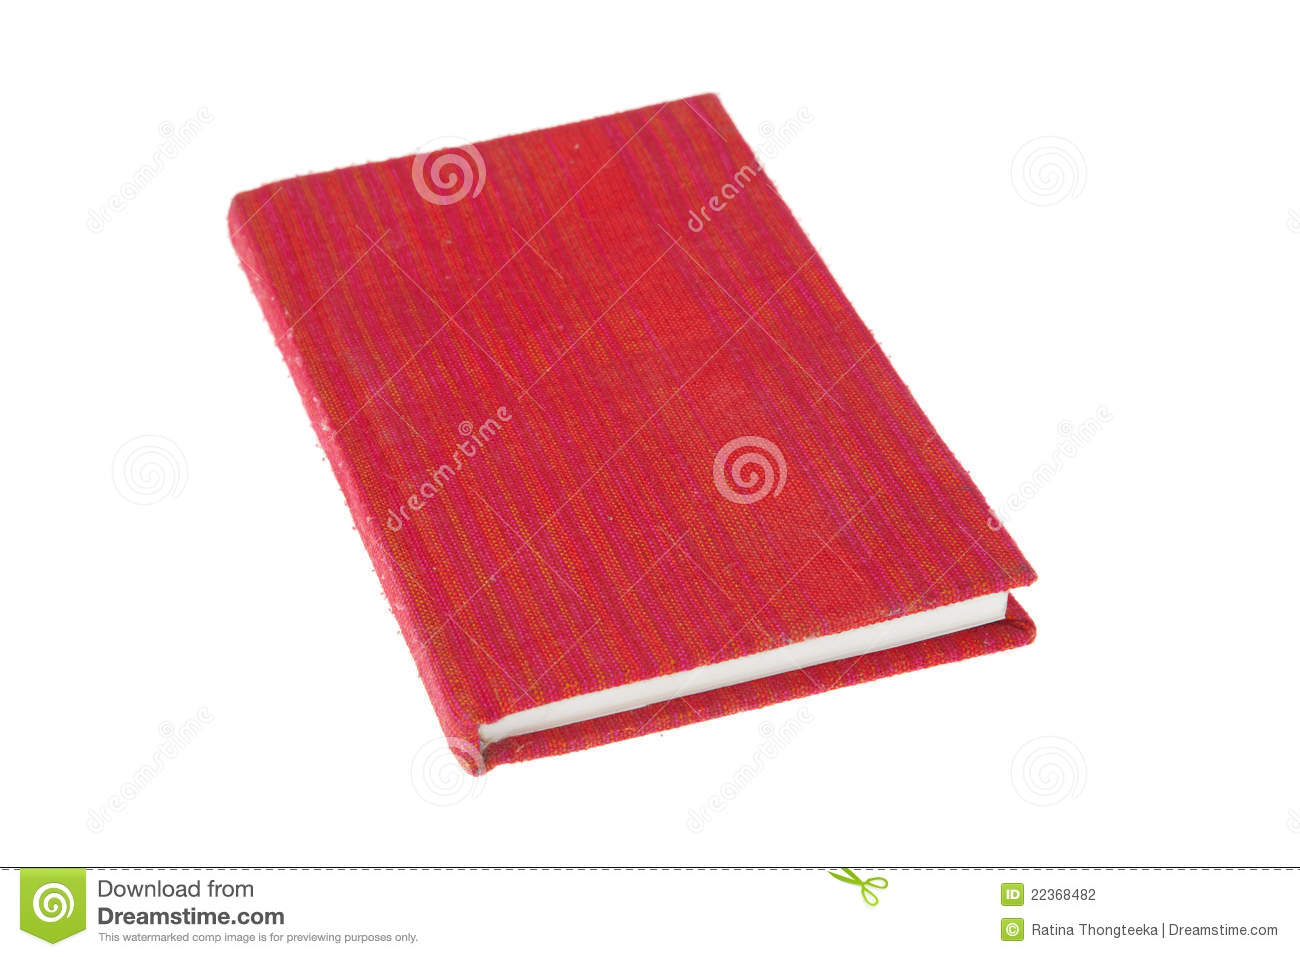 Cookbook With Red Cover : Book red cover fabric stock photography image